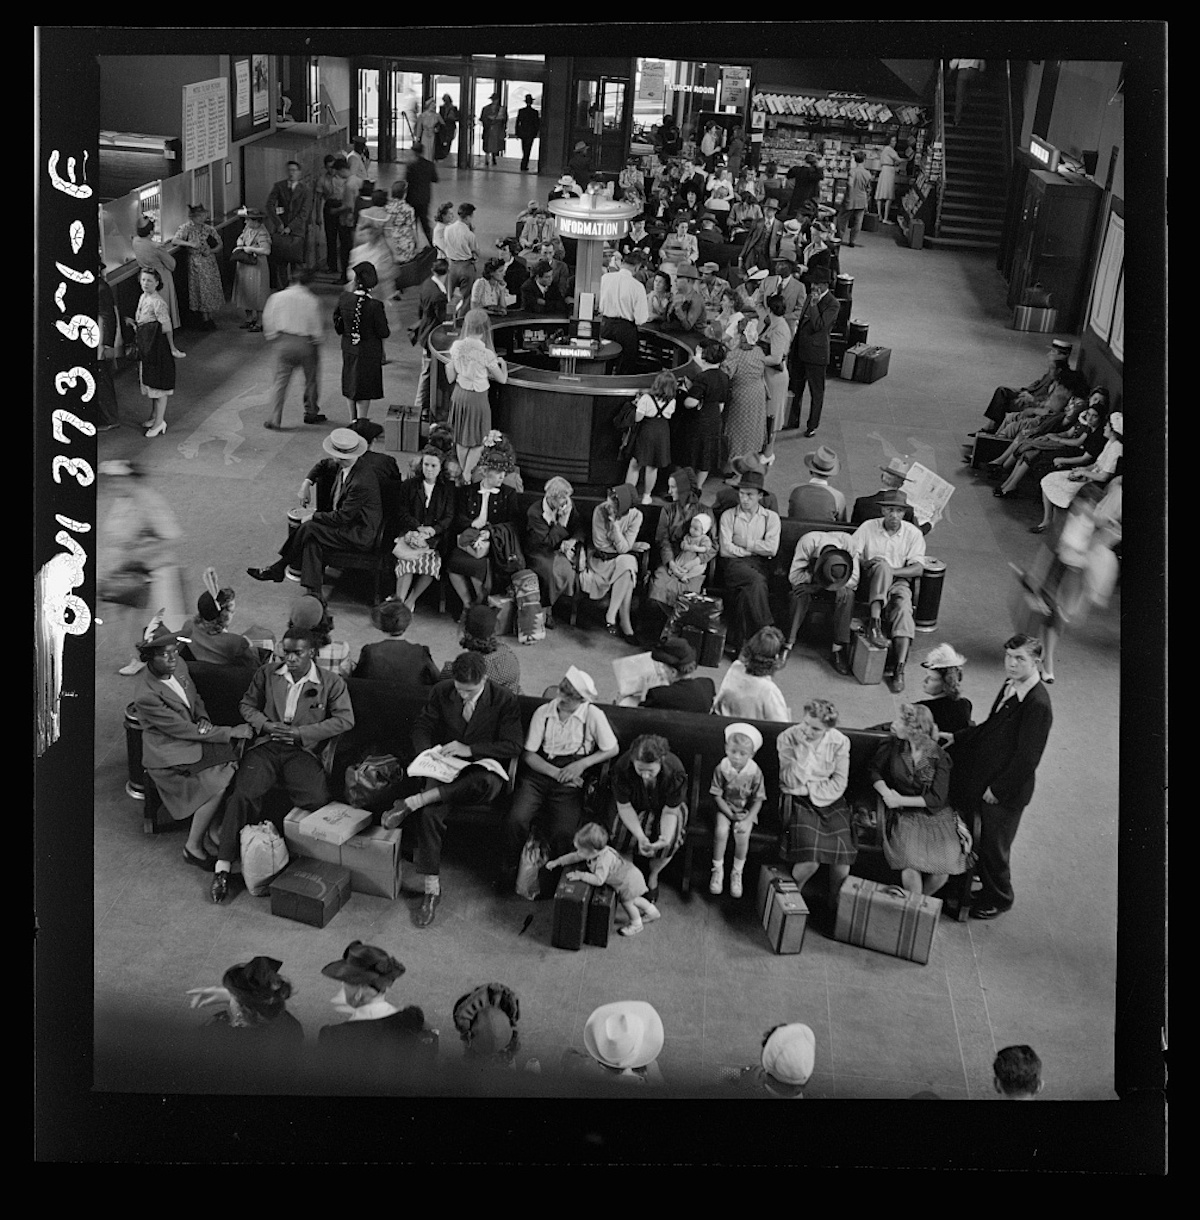 Pittsburgh, Pennsylvania. The waiting room at the Greyhound bus terminal